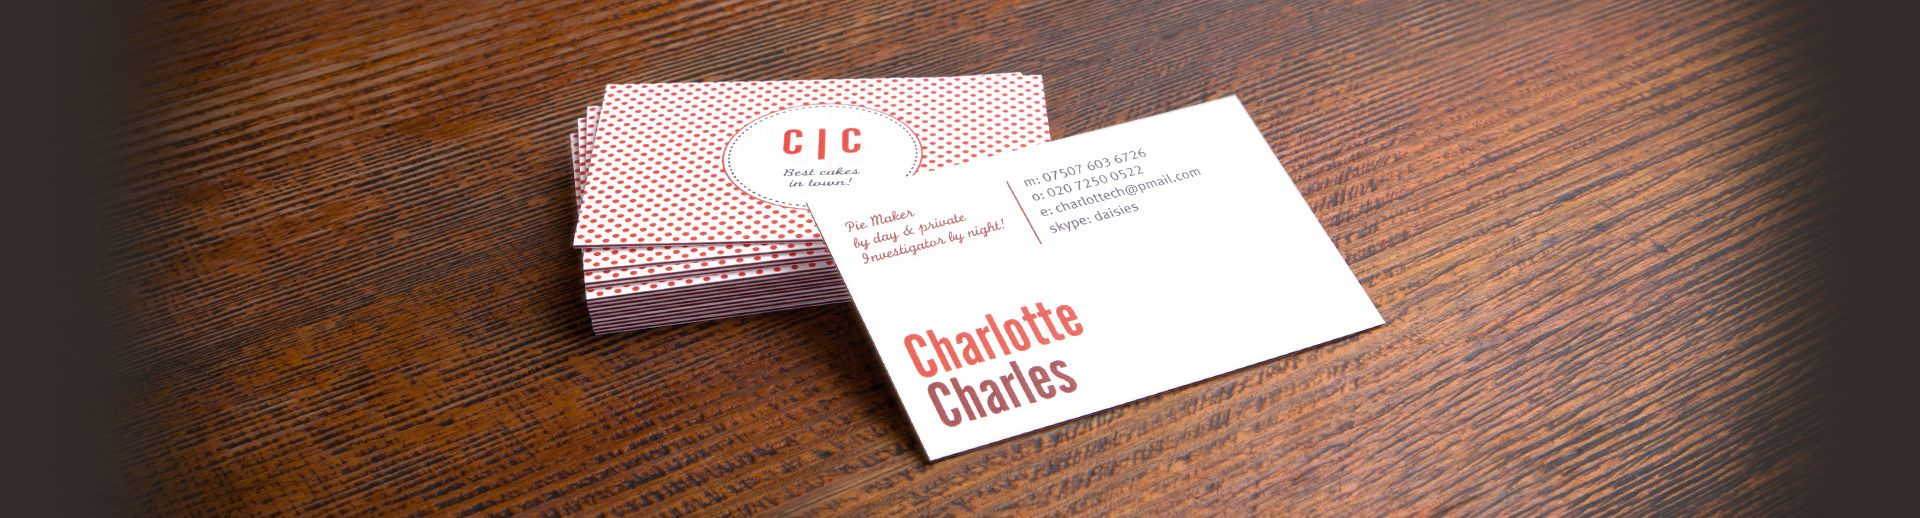 25 best △△ Cool business cards △△ images on Pinterest ...